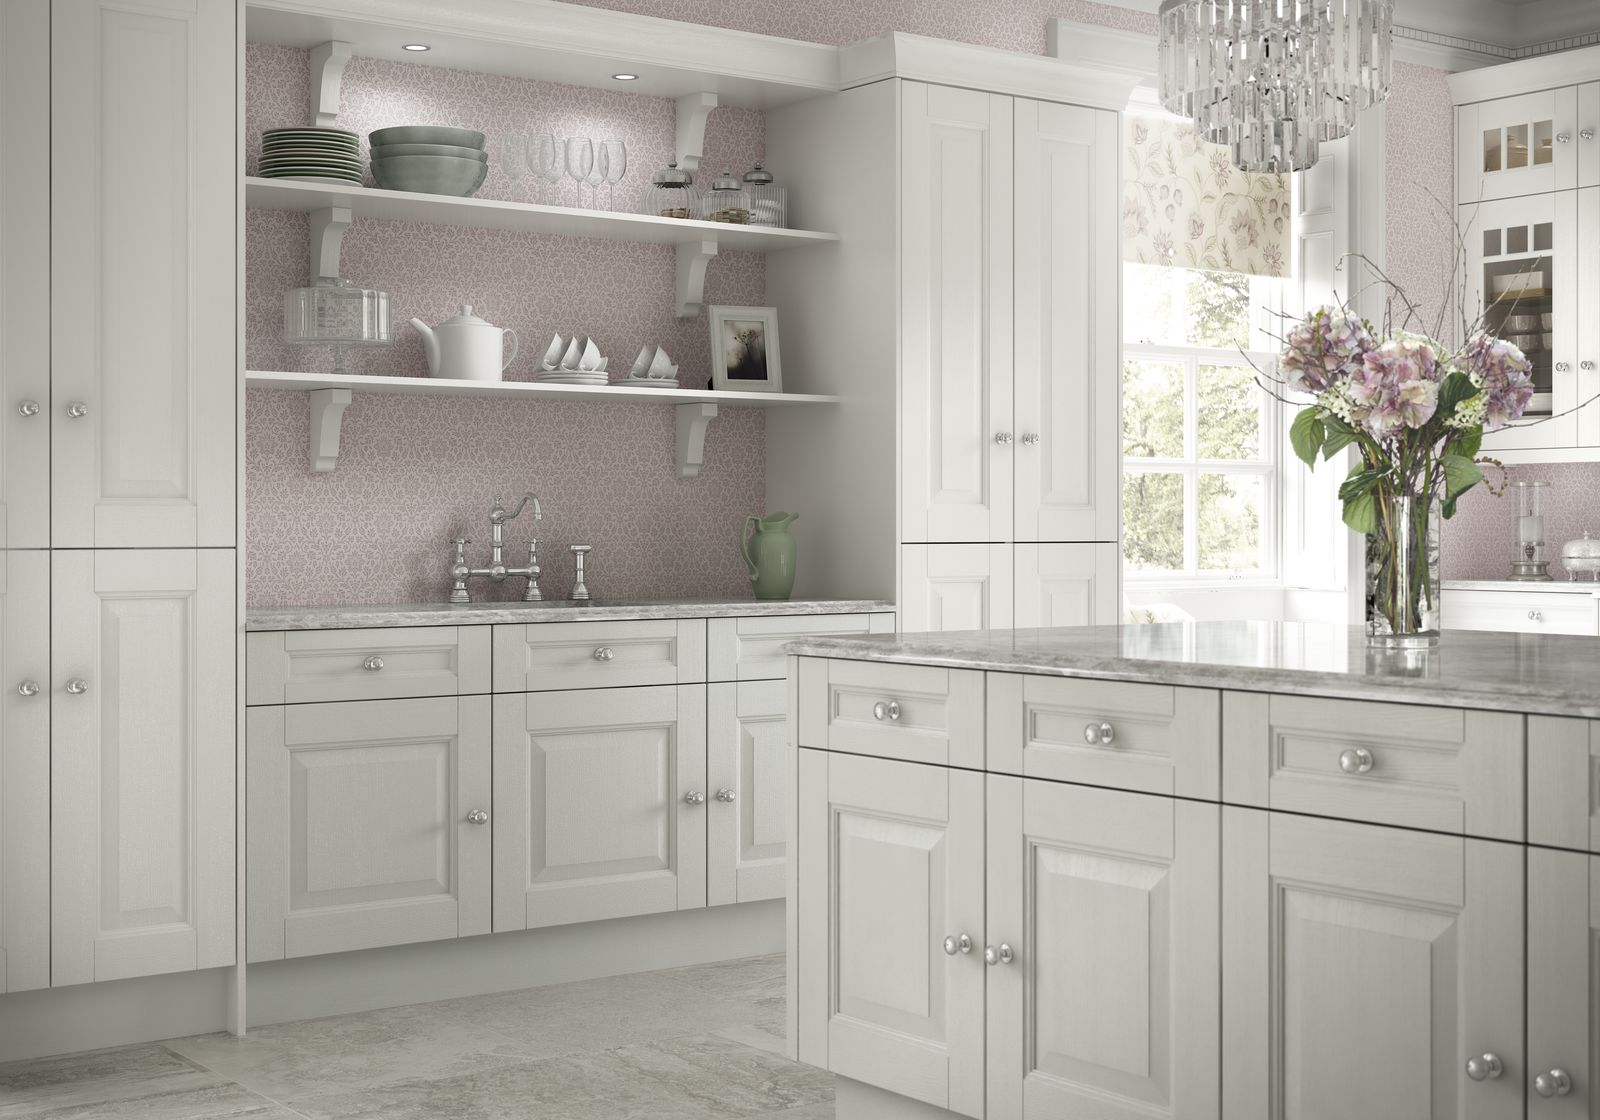 Bedale Collection Laura Ashley Glotech Kitchens